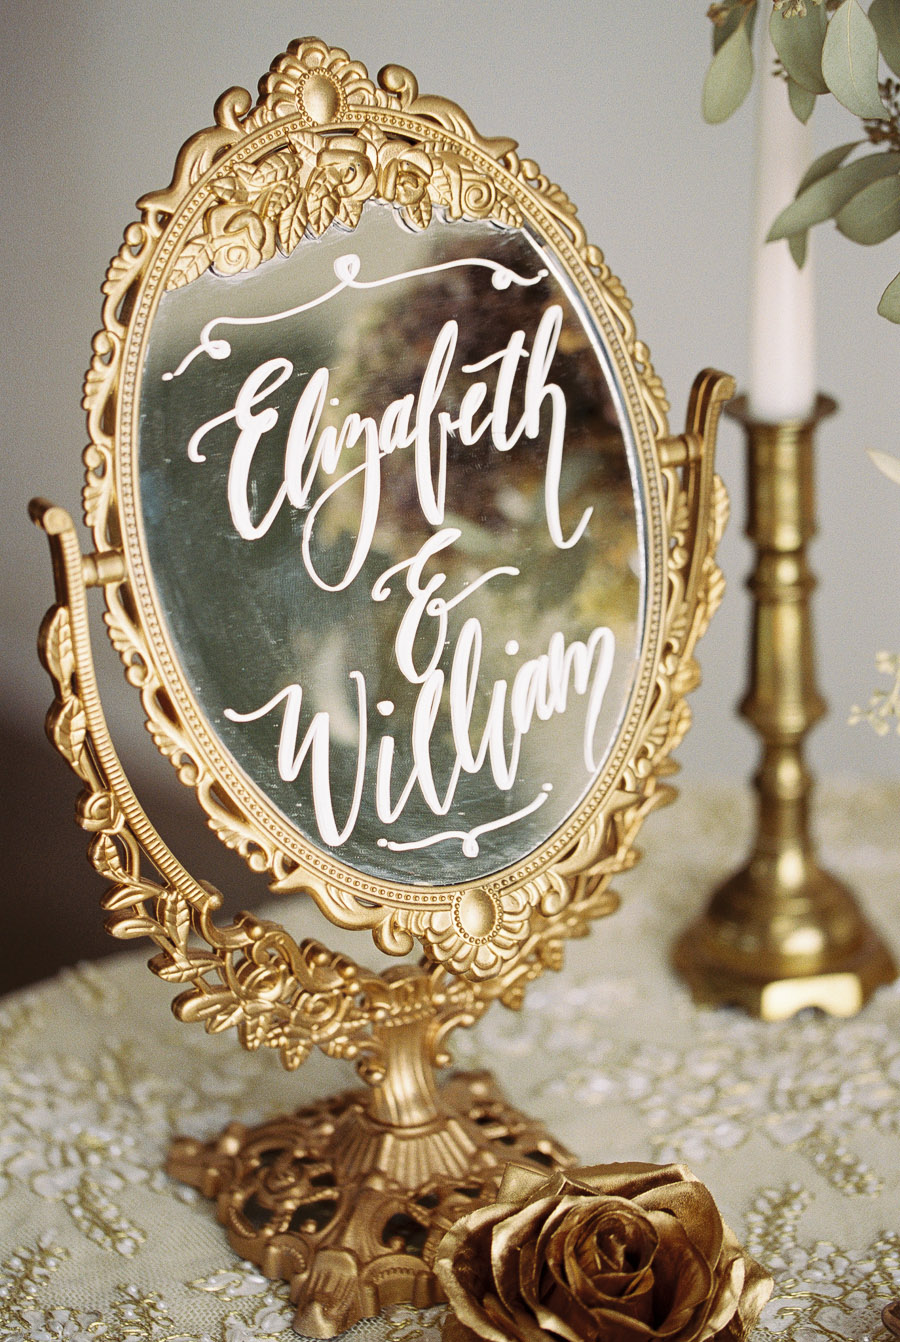 Calligraphy on Gold Vintage Mirror | by Lara Lam Photography